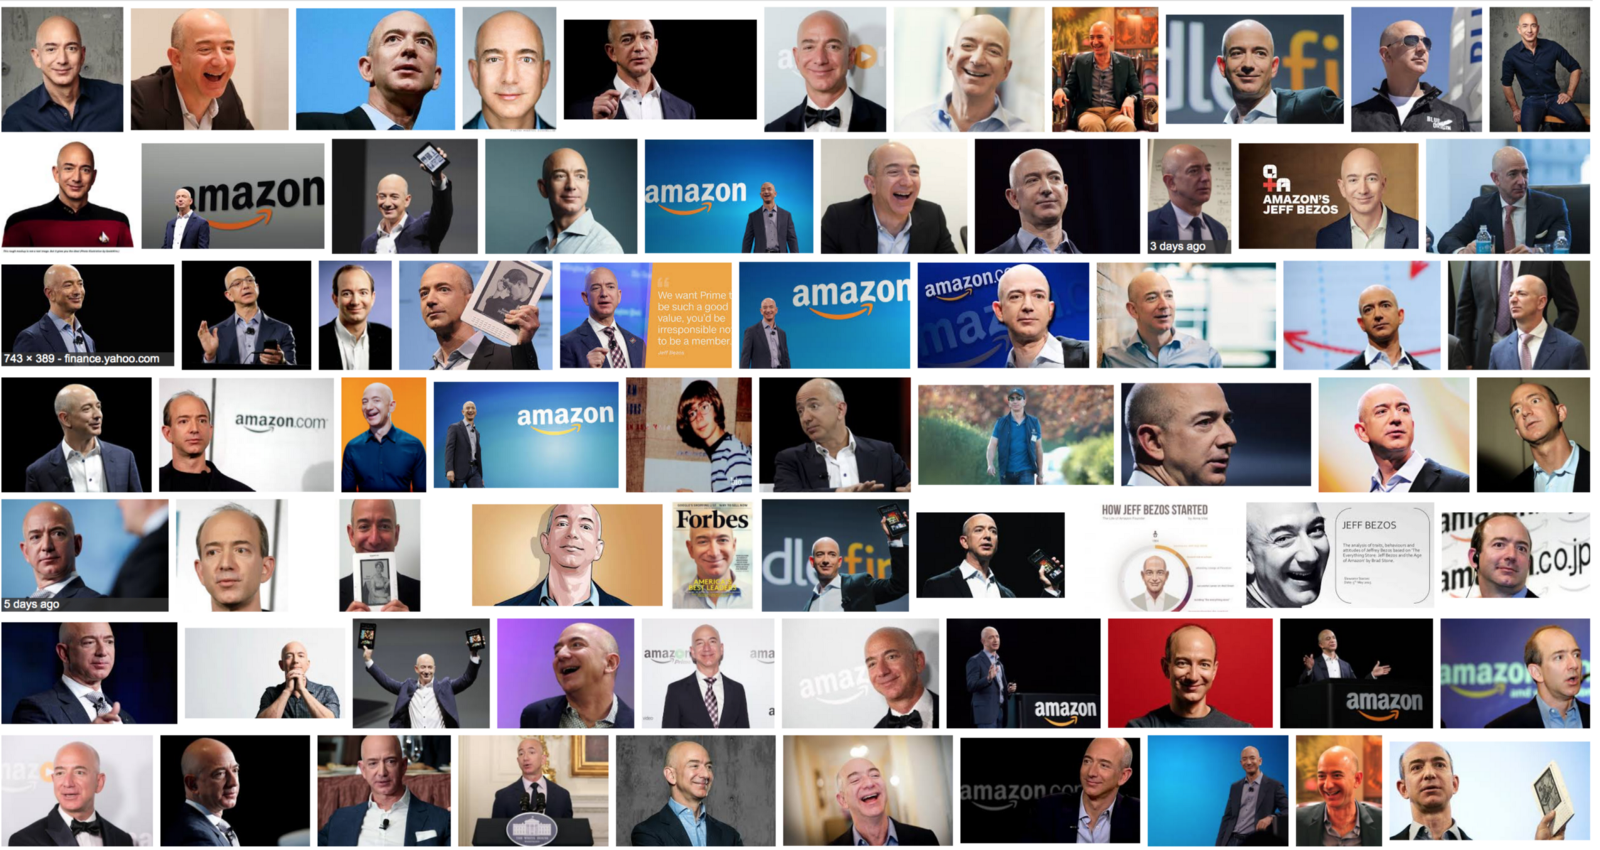 /amazon-the-company-with-a-100-ceos-cannot-be-stopped-52a8331030f1 feature image